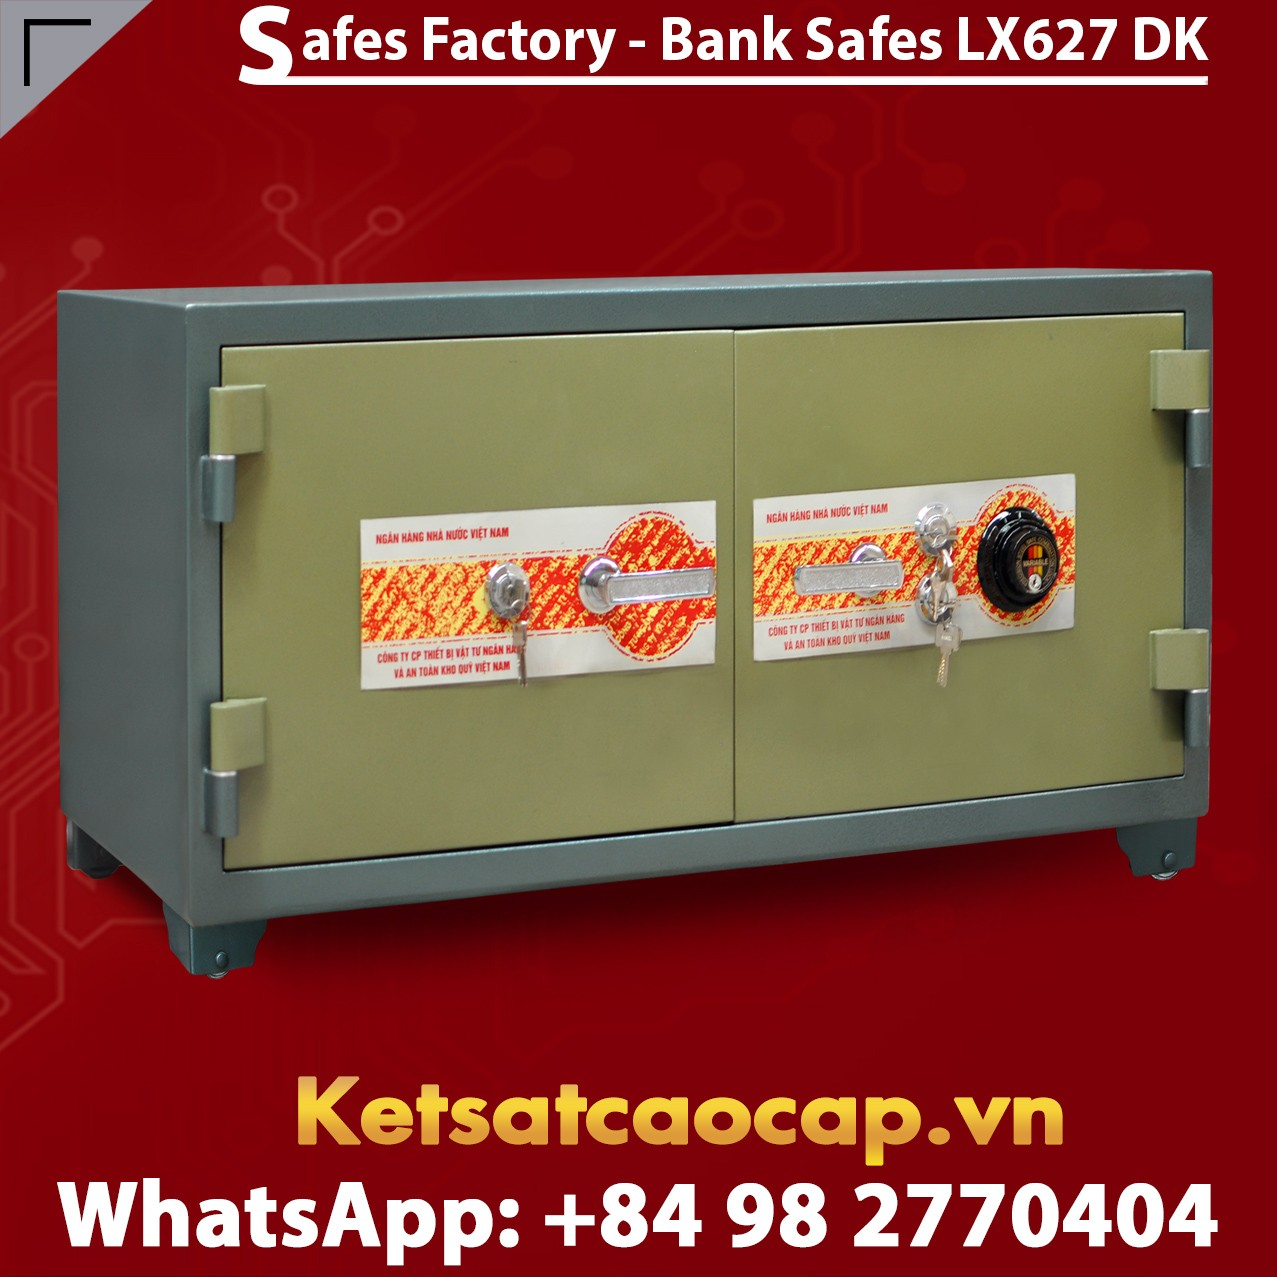 Bank Safe LX627 DK Two Doors Cheap Price Stainless Steel Security Safe